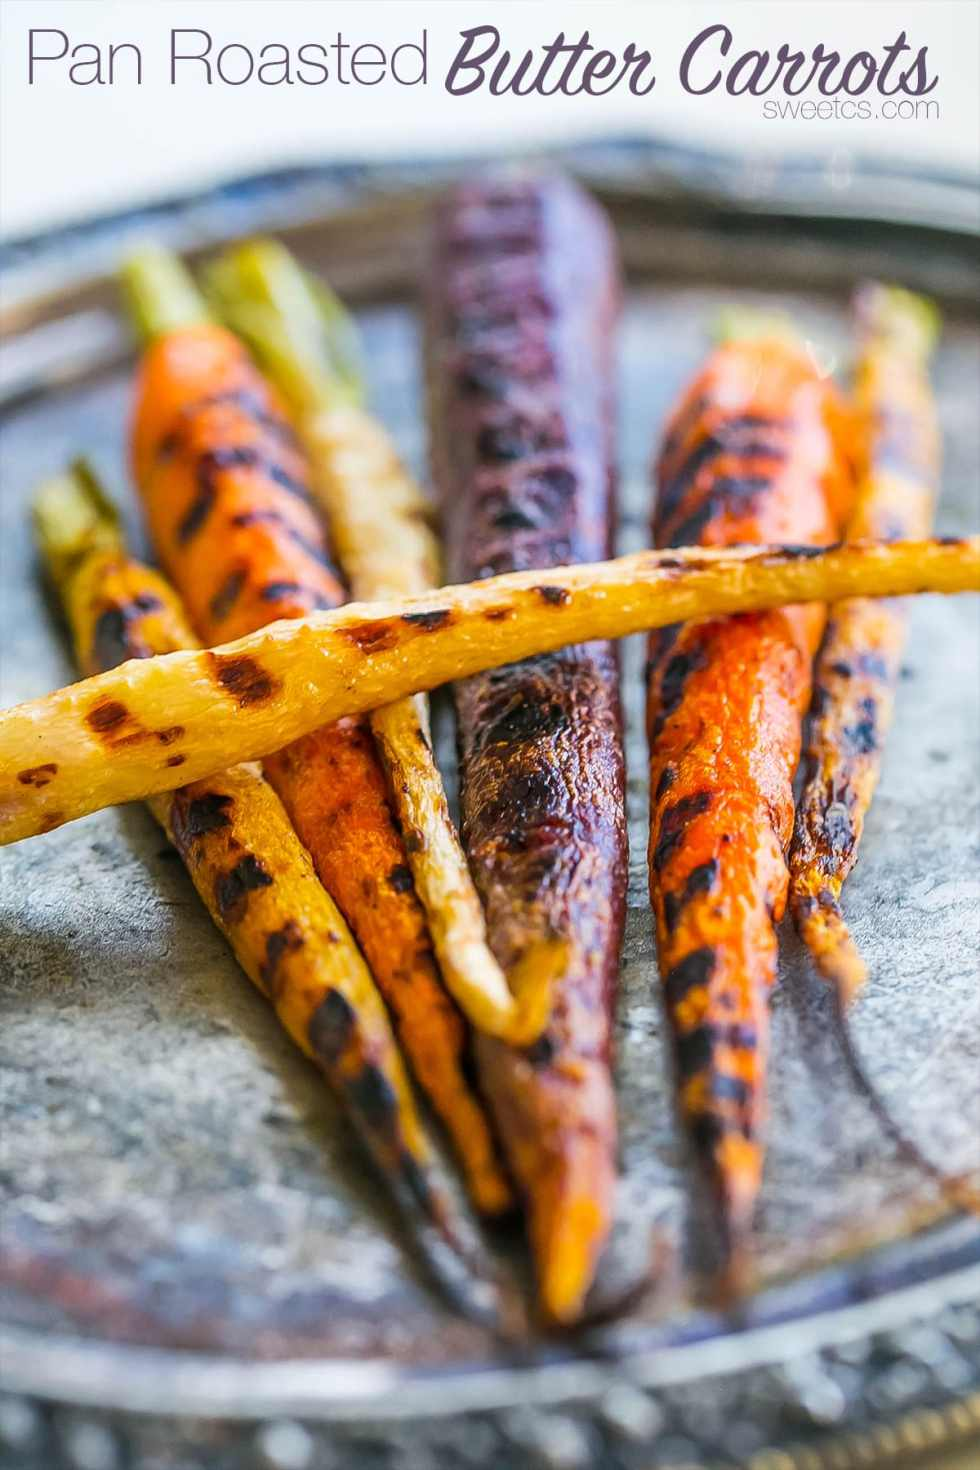 Butter Carrots {Sweet C's}